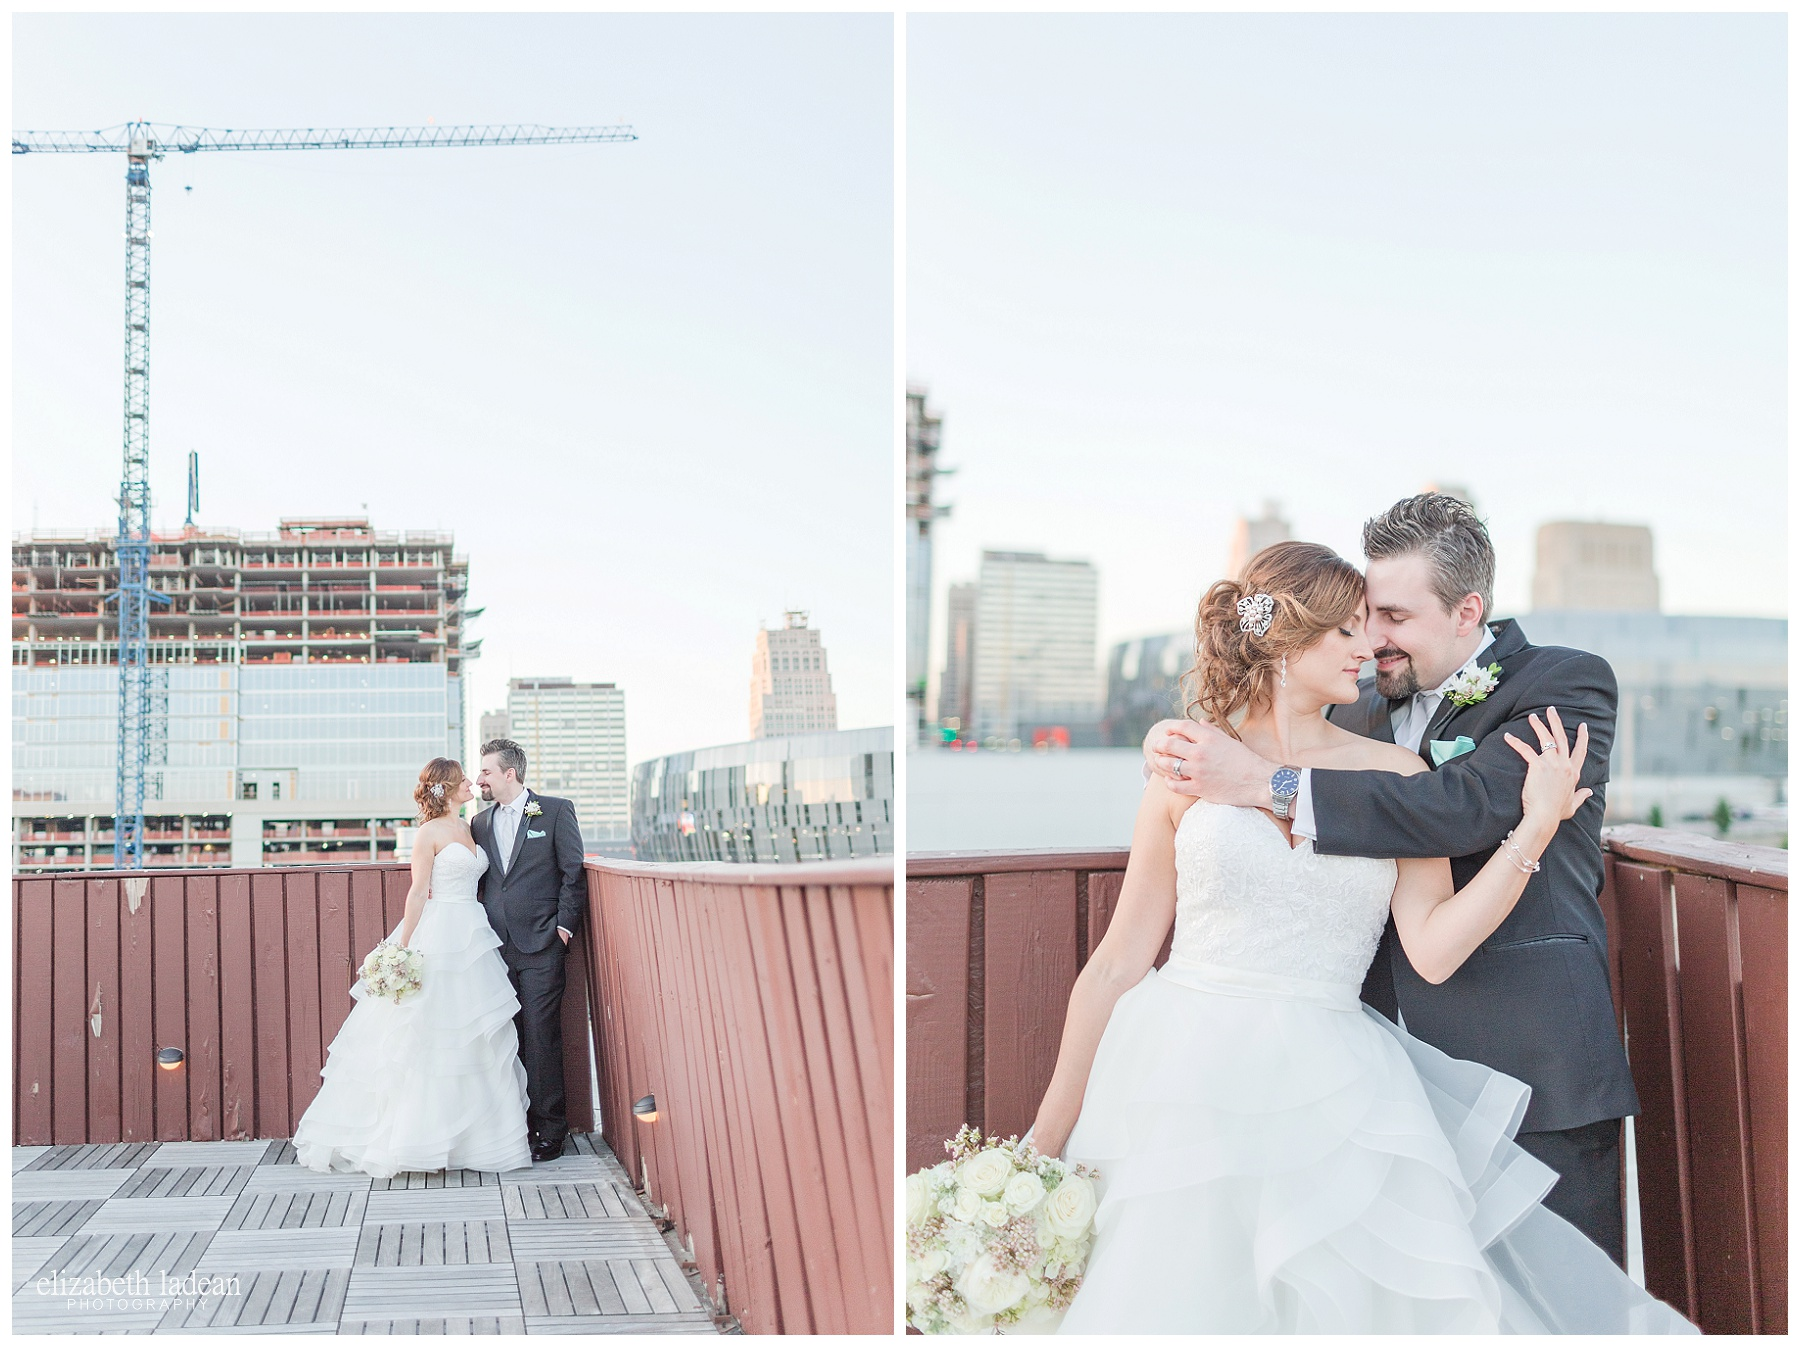 Terrace-on-Grand-Kansas-City-Wedding-Photography-C+J-0506-Elizabeth-Ladean-Photography-photo_0657.jpg